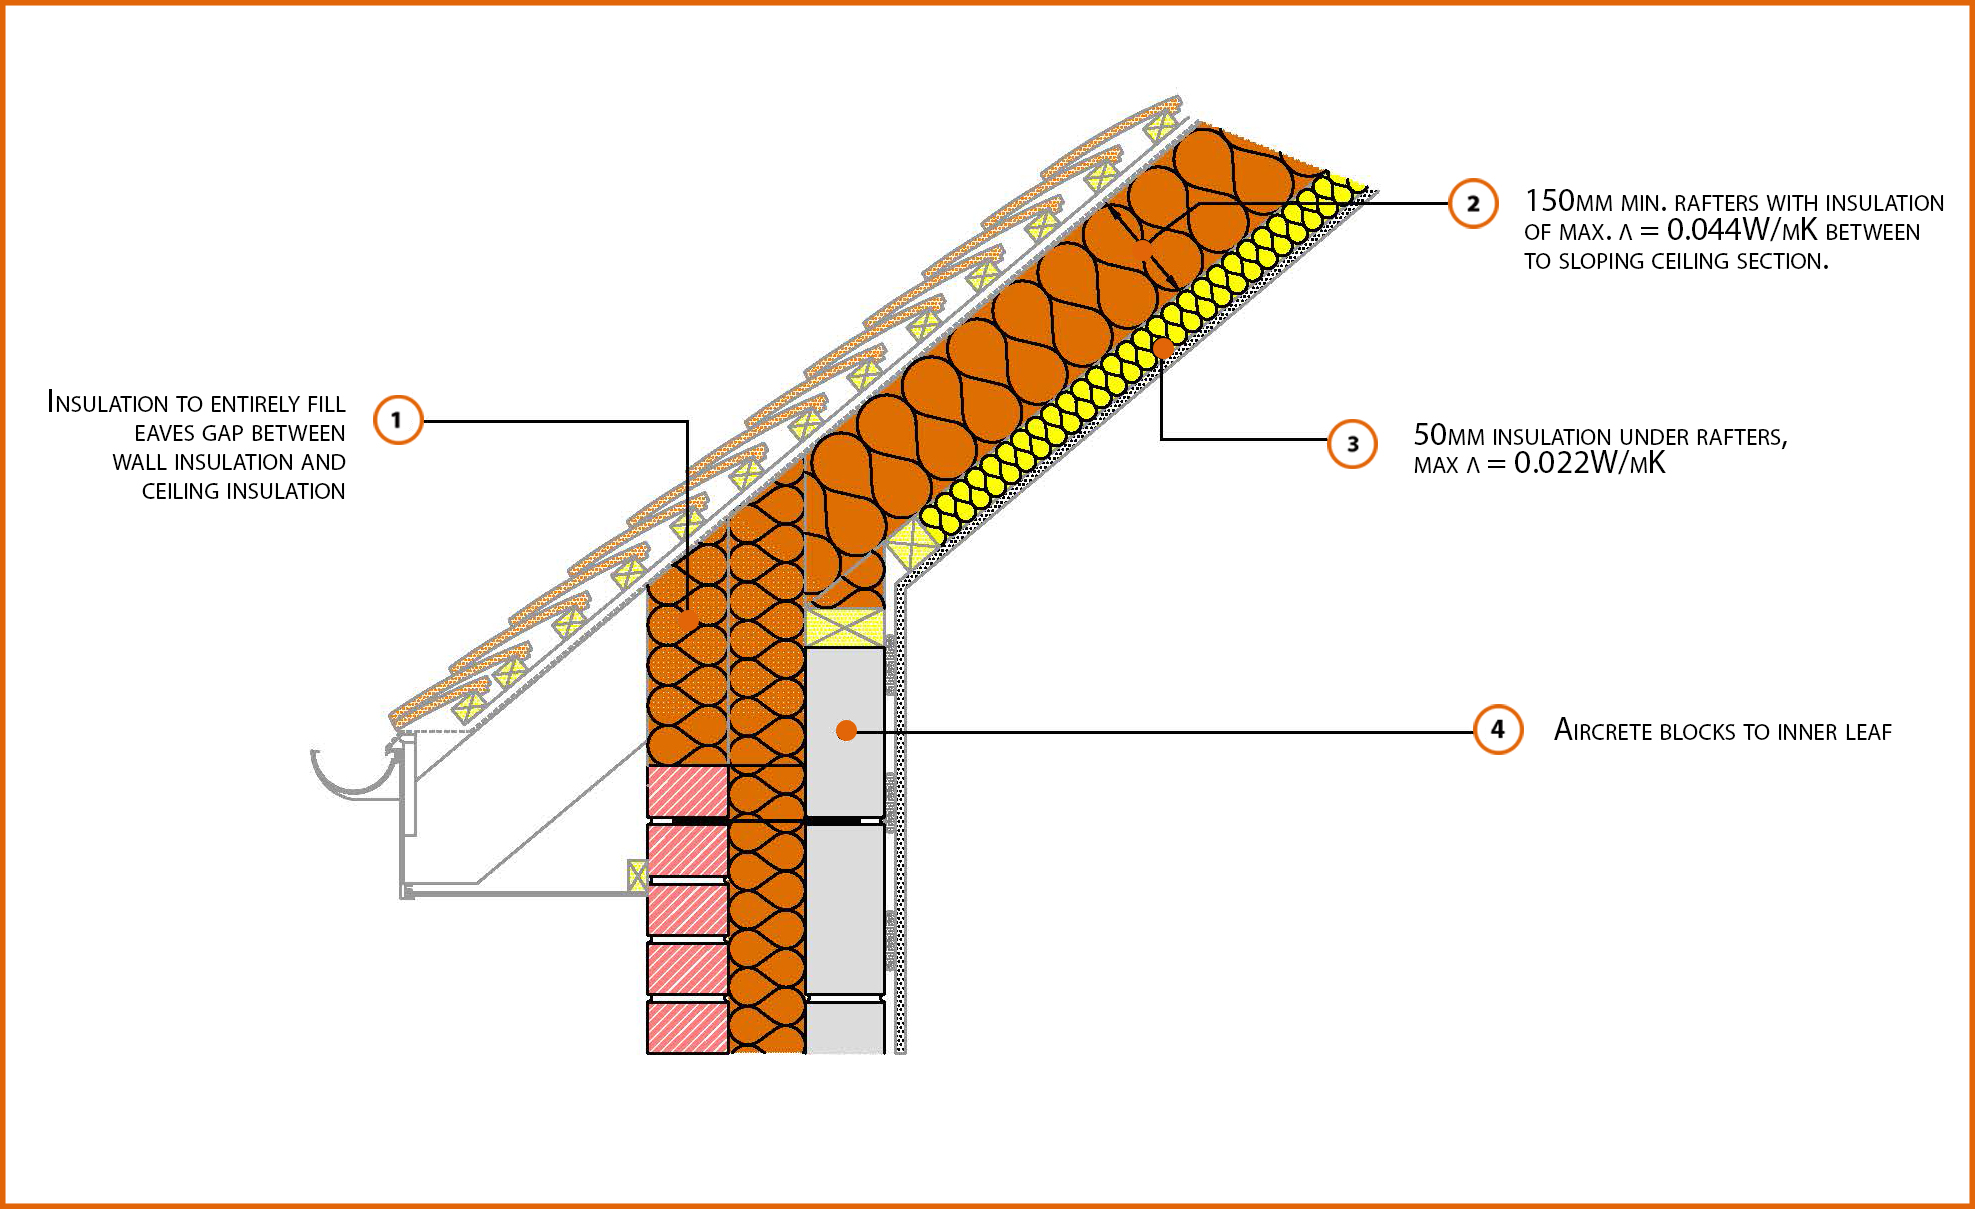 E11mcff4 Pitched Roof Eaves Insulation At Rafter Level